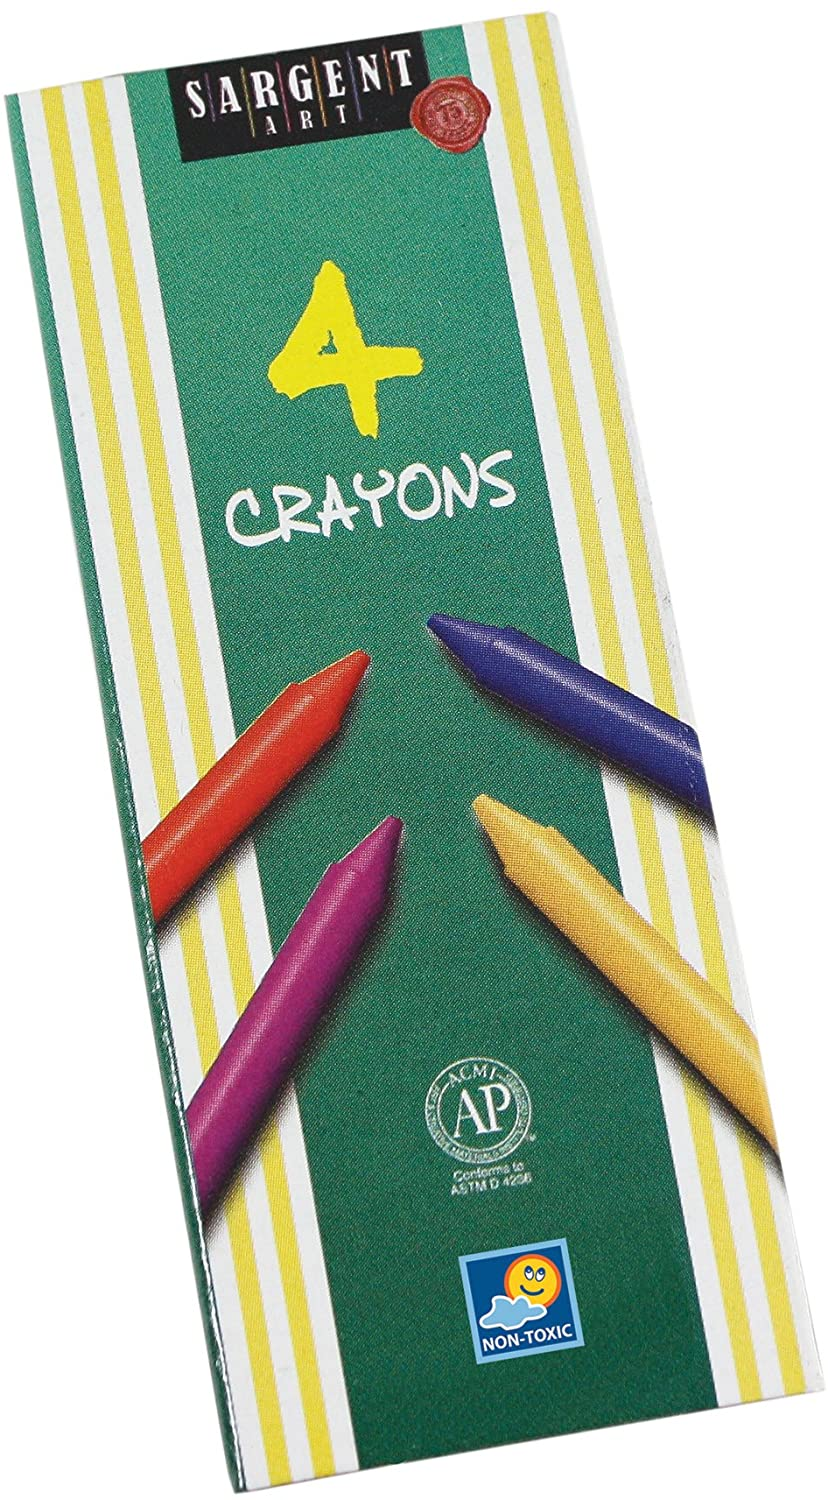 Sargent Art 55-0604 4-Count Regular Crayon, Tuck